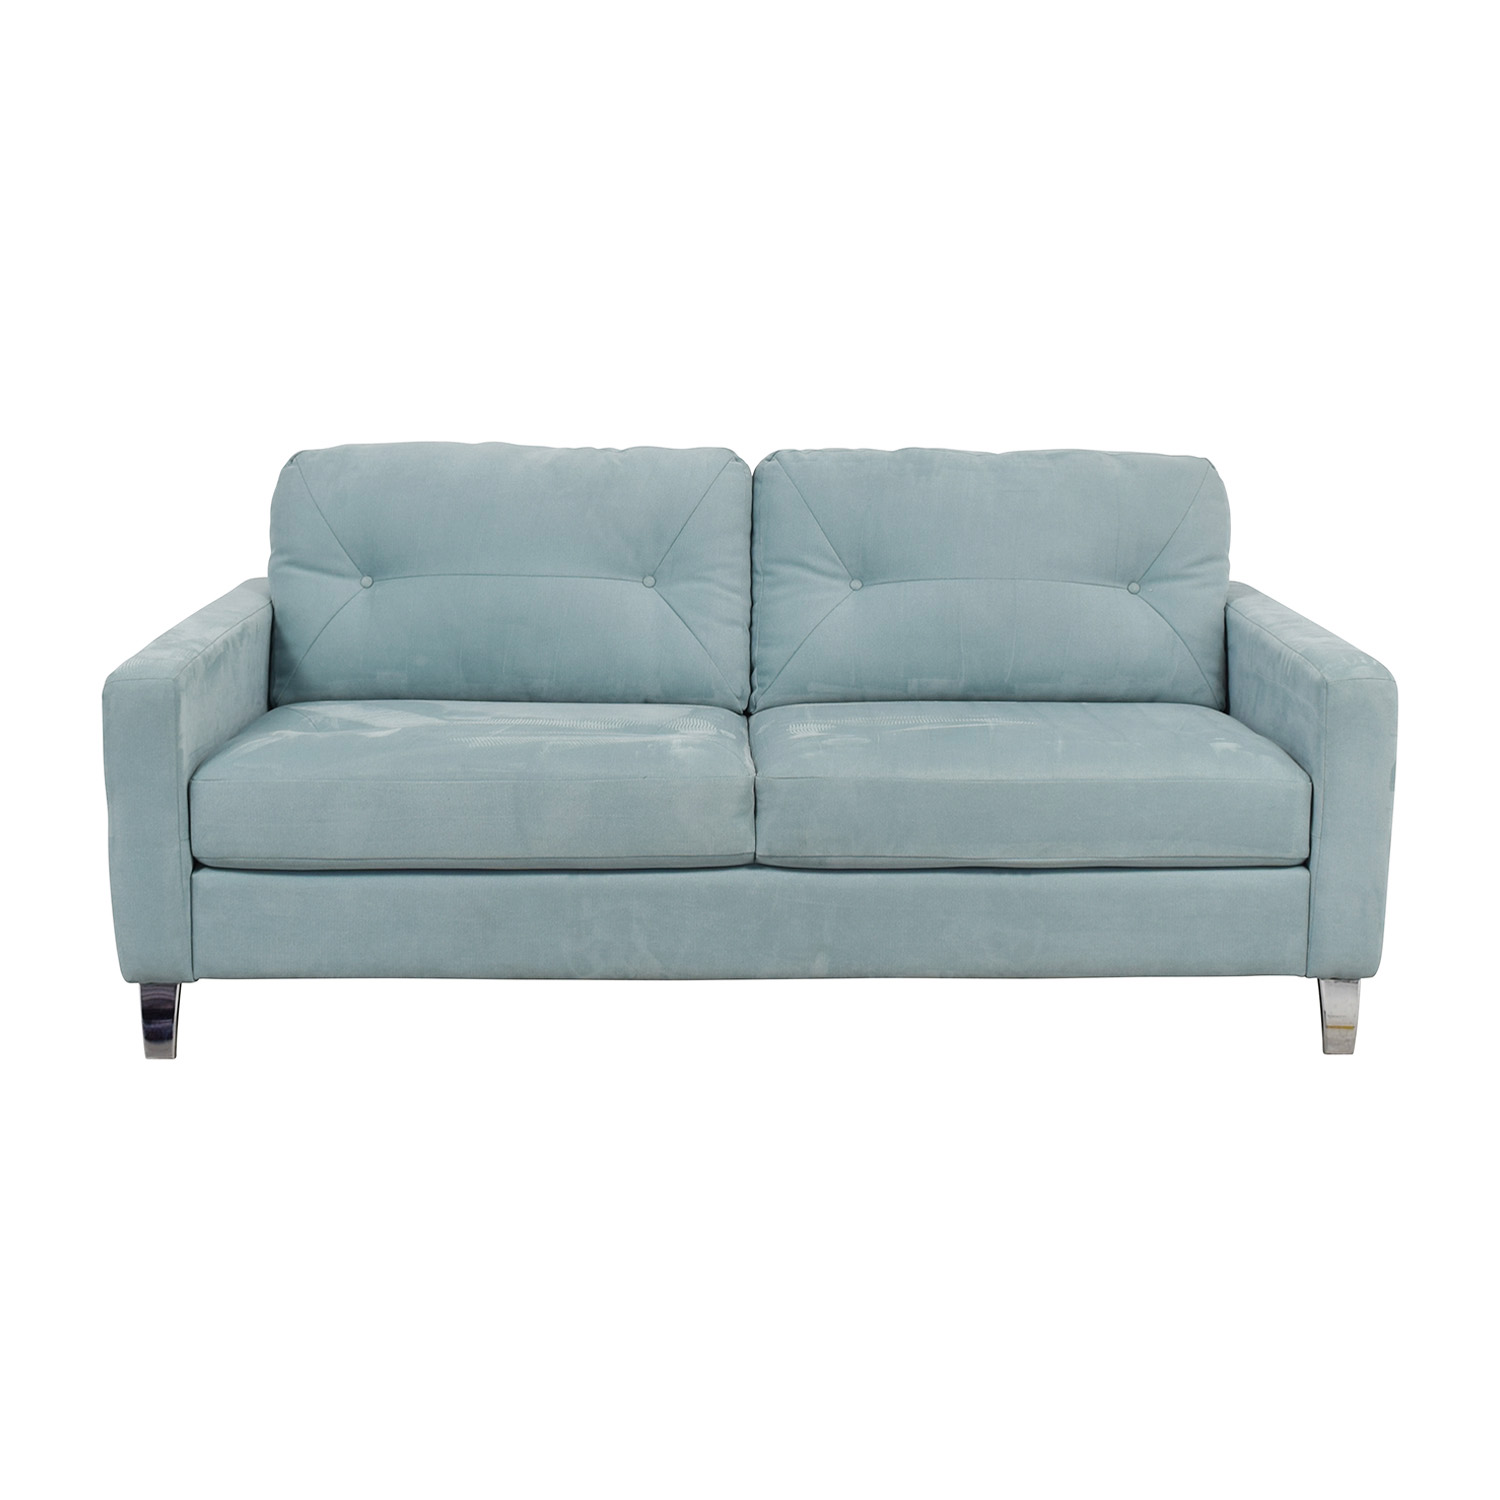 Jensen Sofa Bed Next 62 Off Jensen Lewis Jensen Lewis Sky Blue Semi Tufted Two